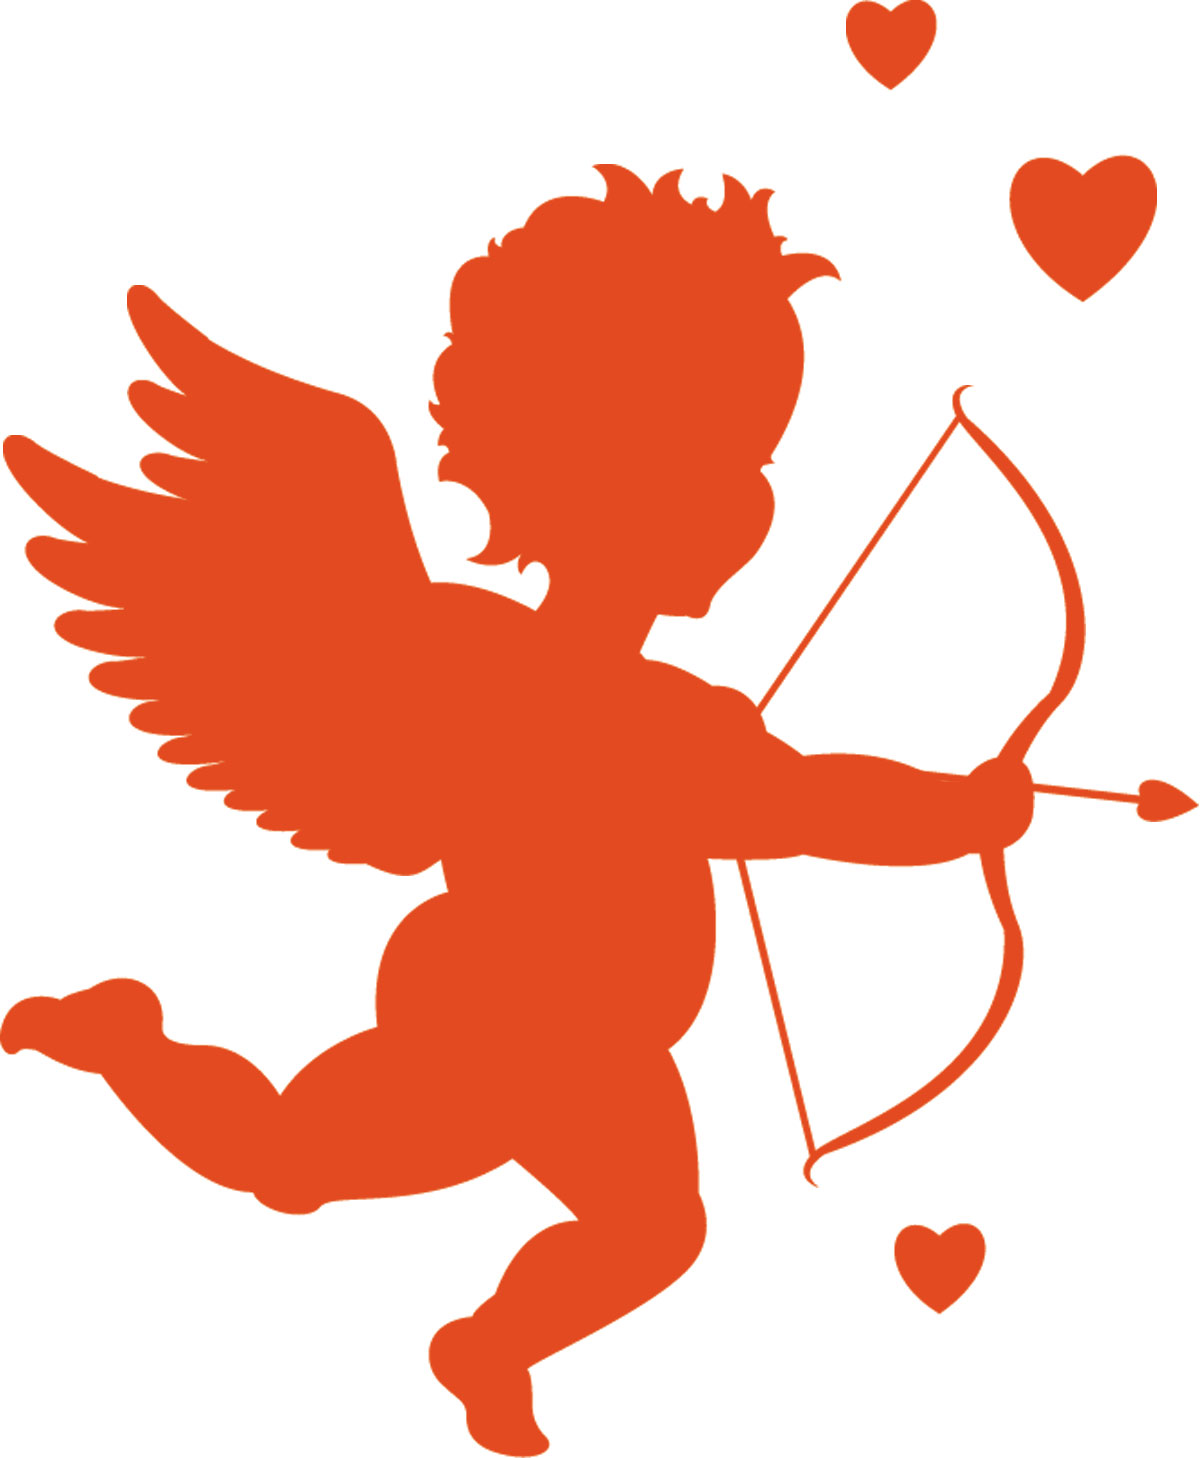 Due To Arrow Shortage Cupid To Use More Discretion This Valentine S